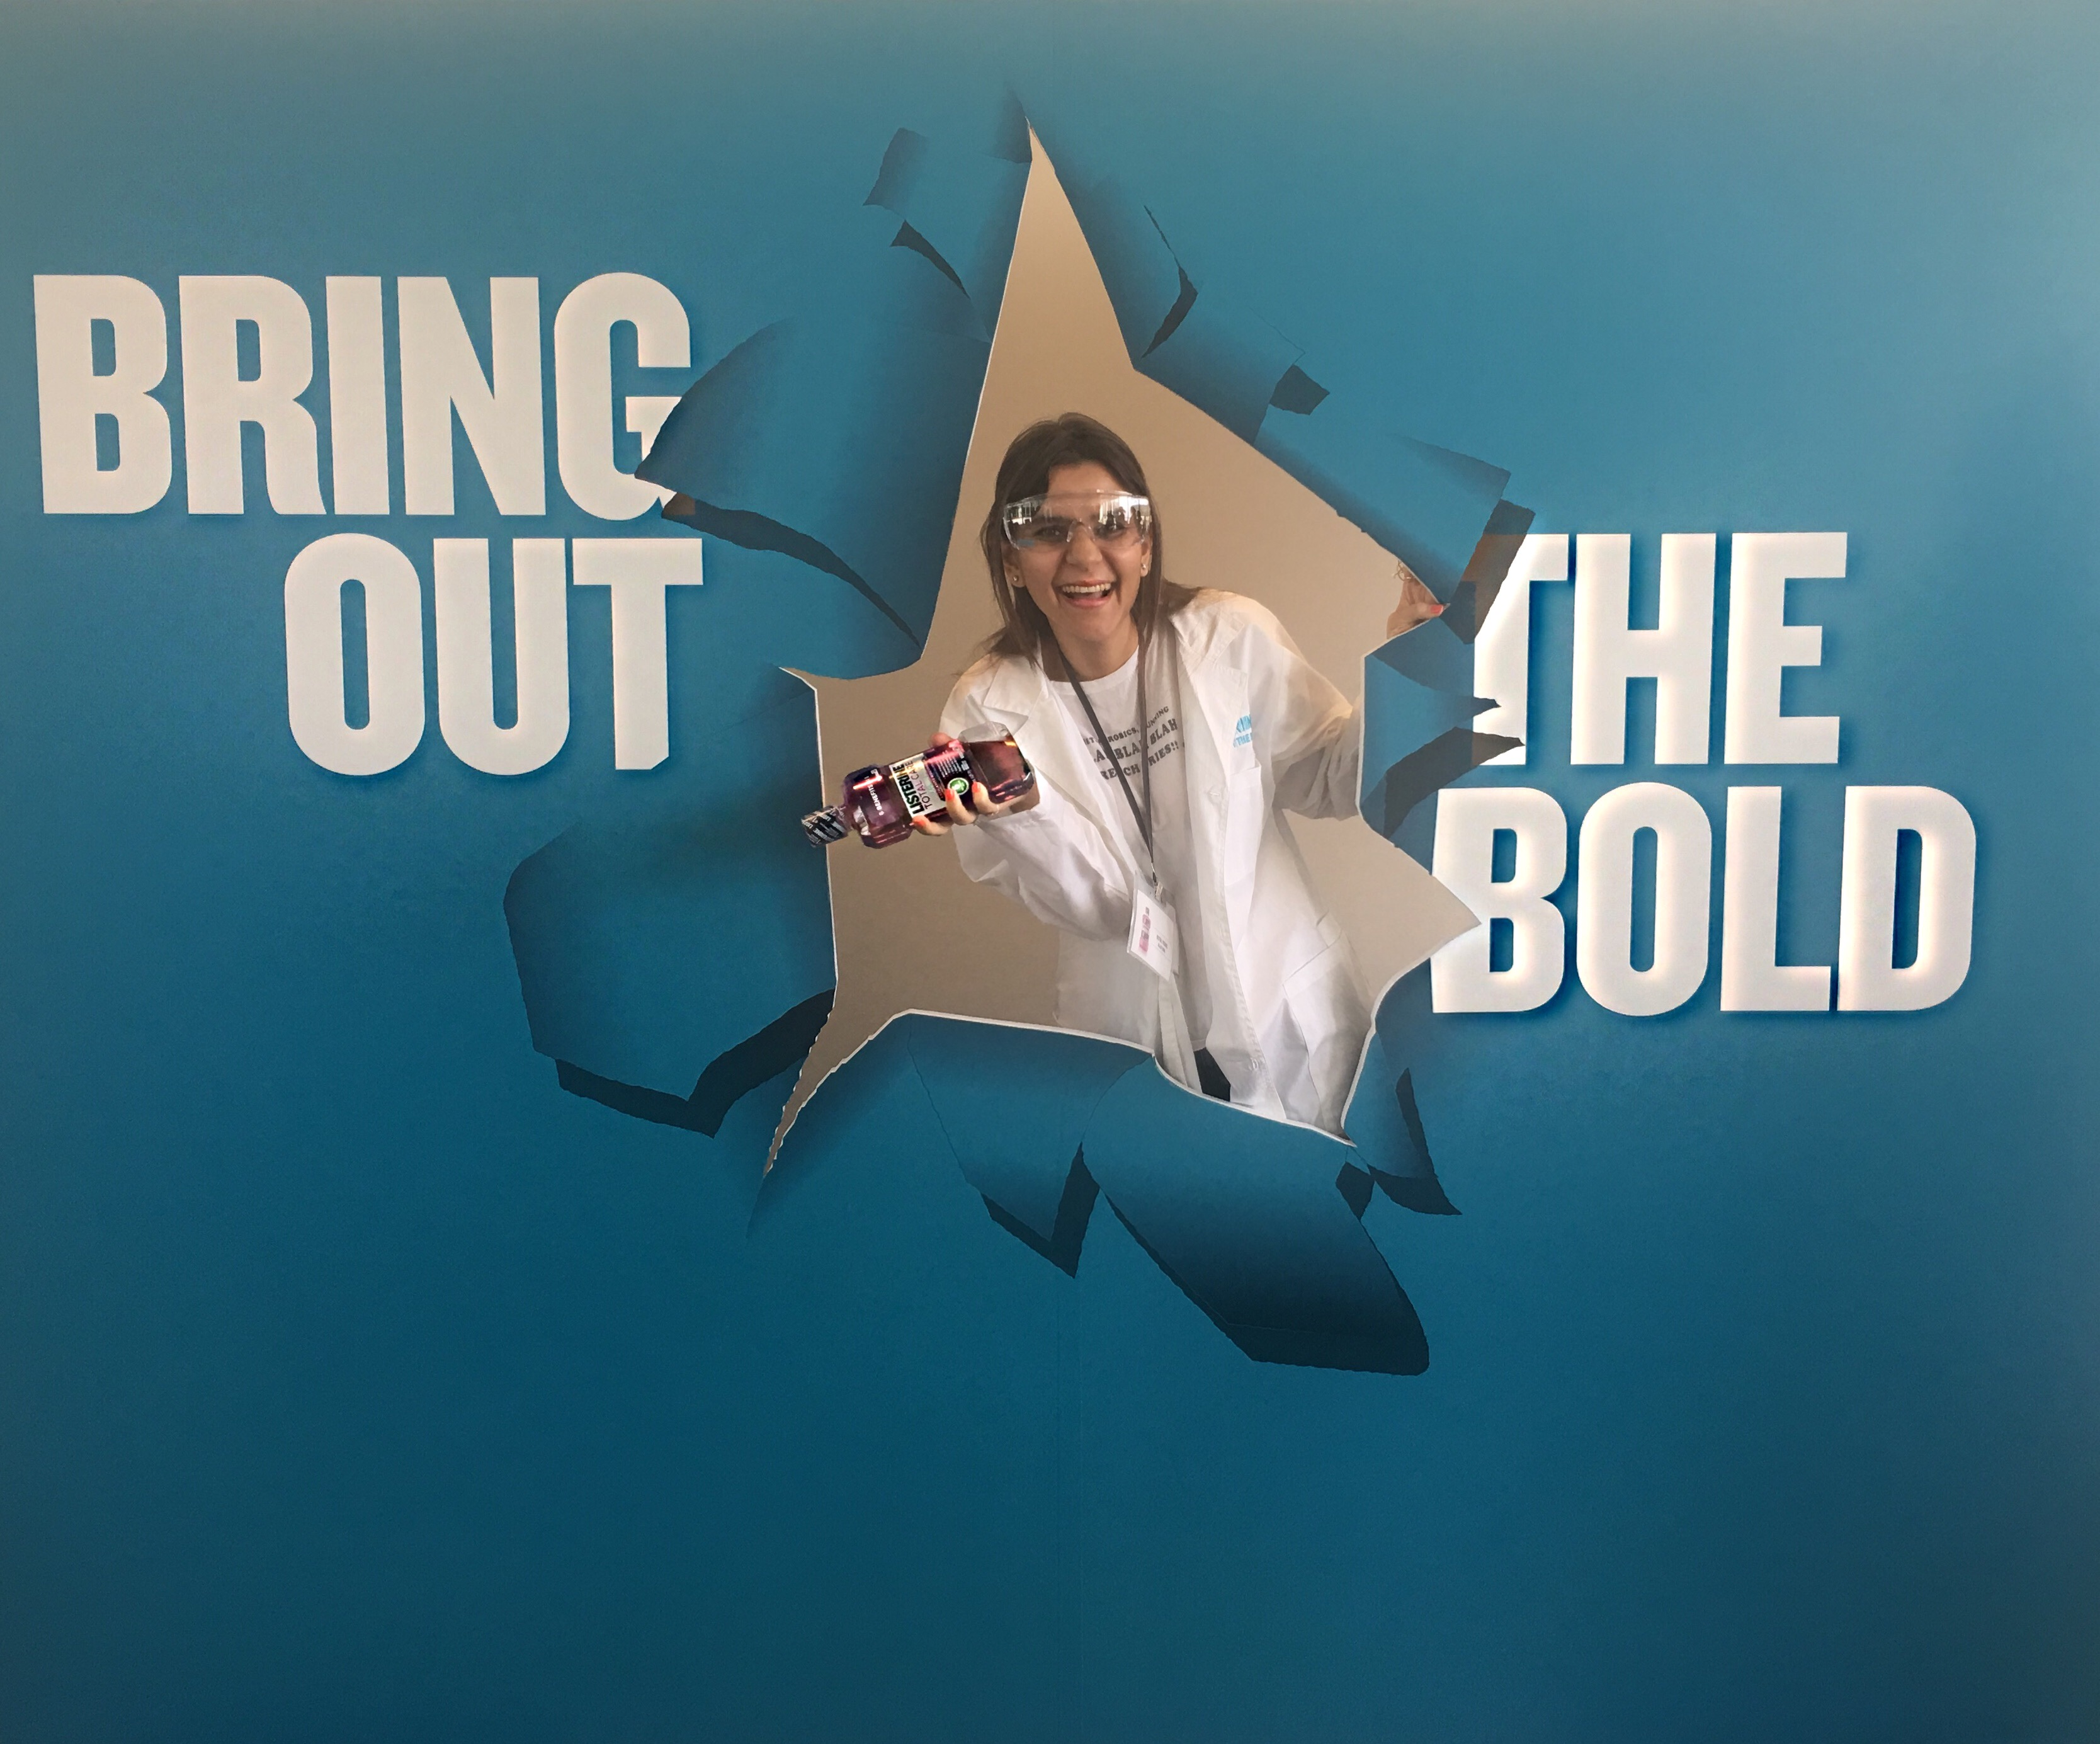 listerine_mouthwash_bring_out_the_bold_campaign